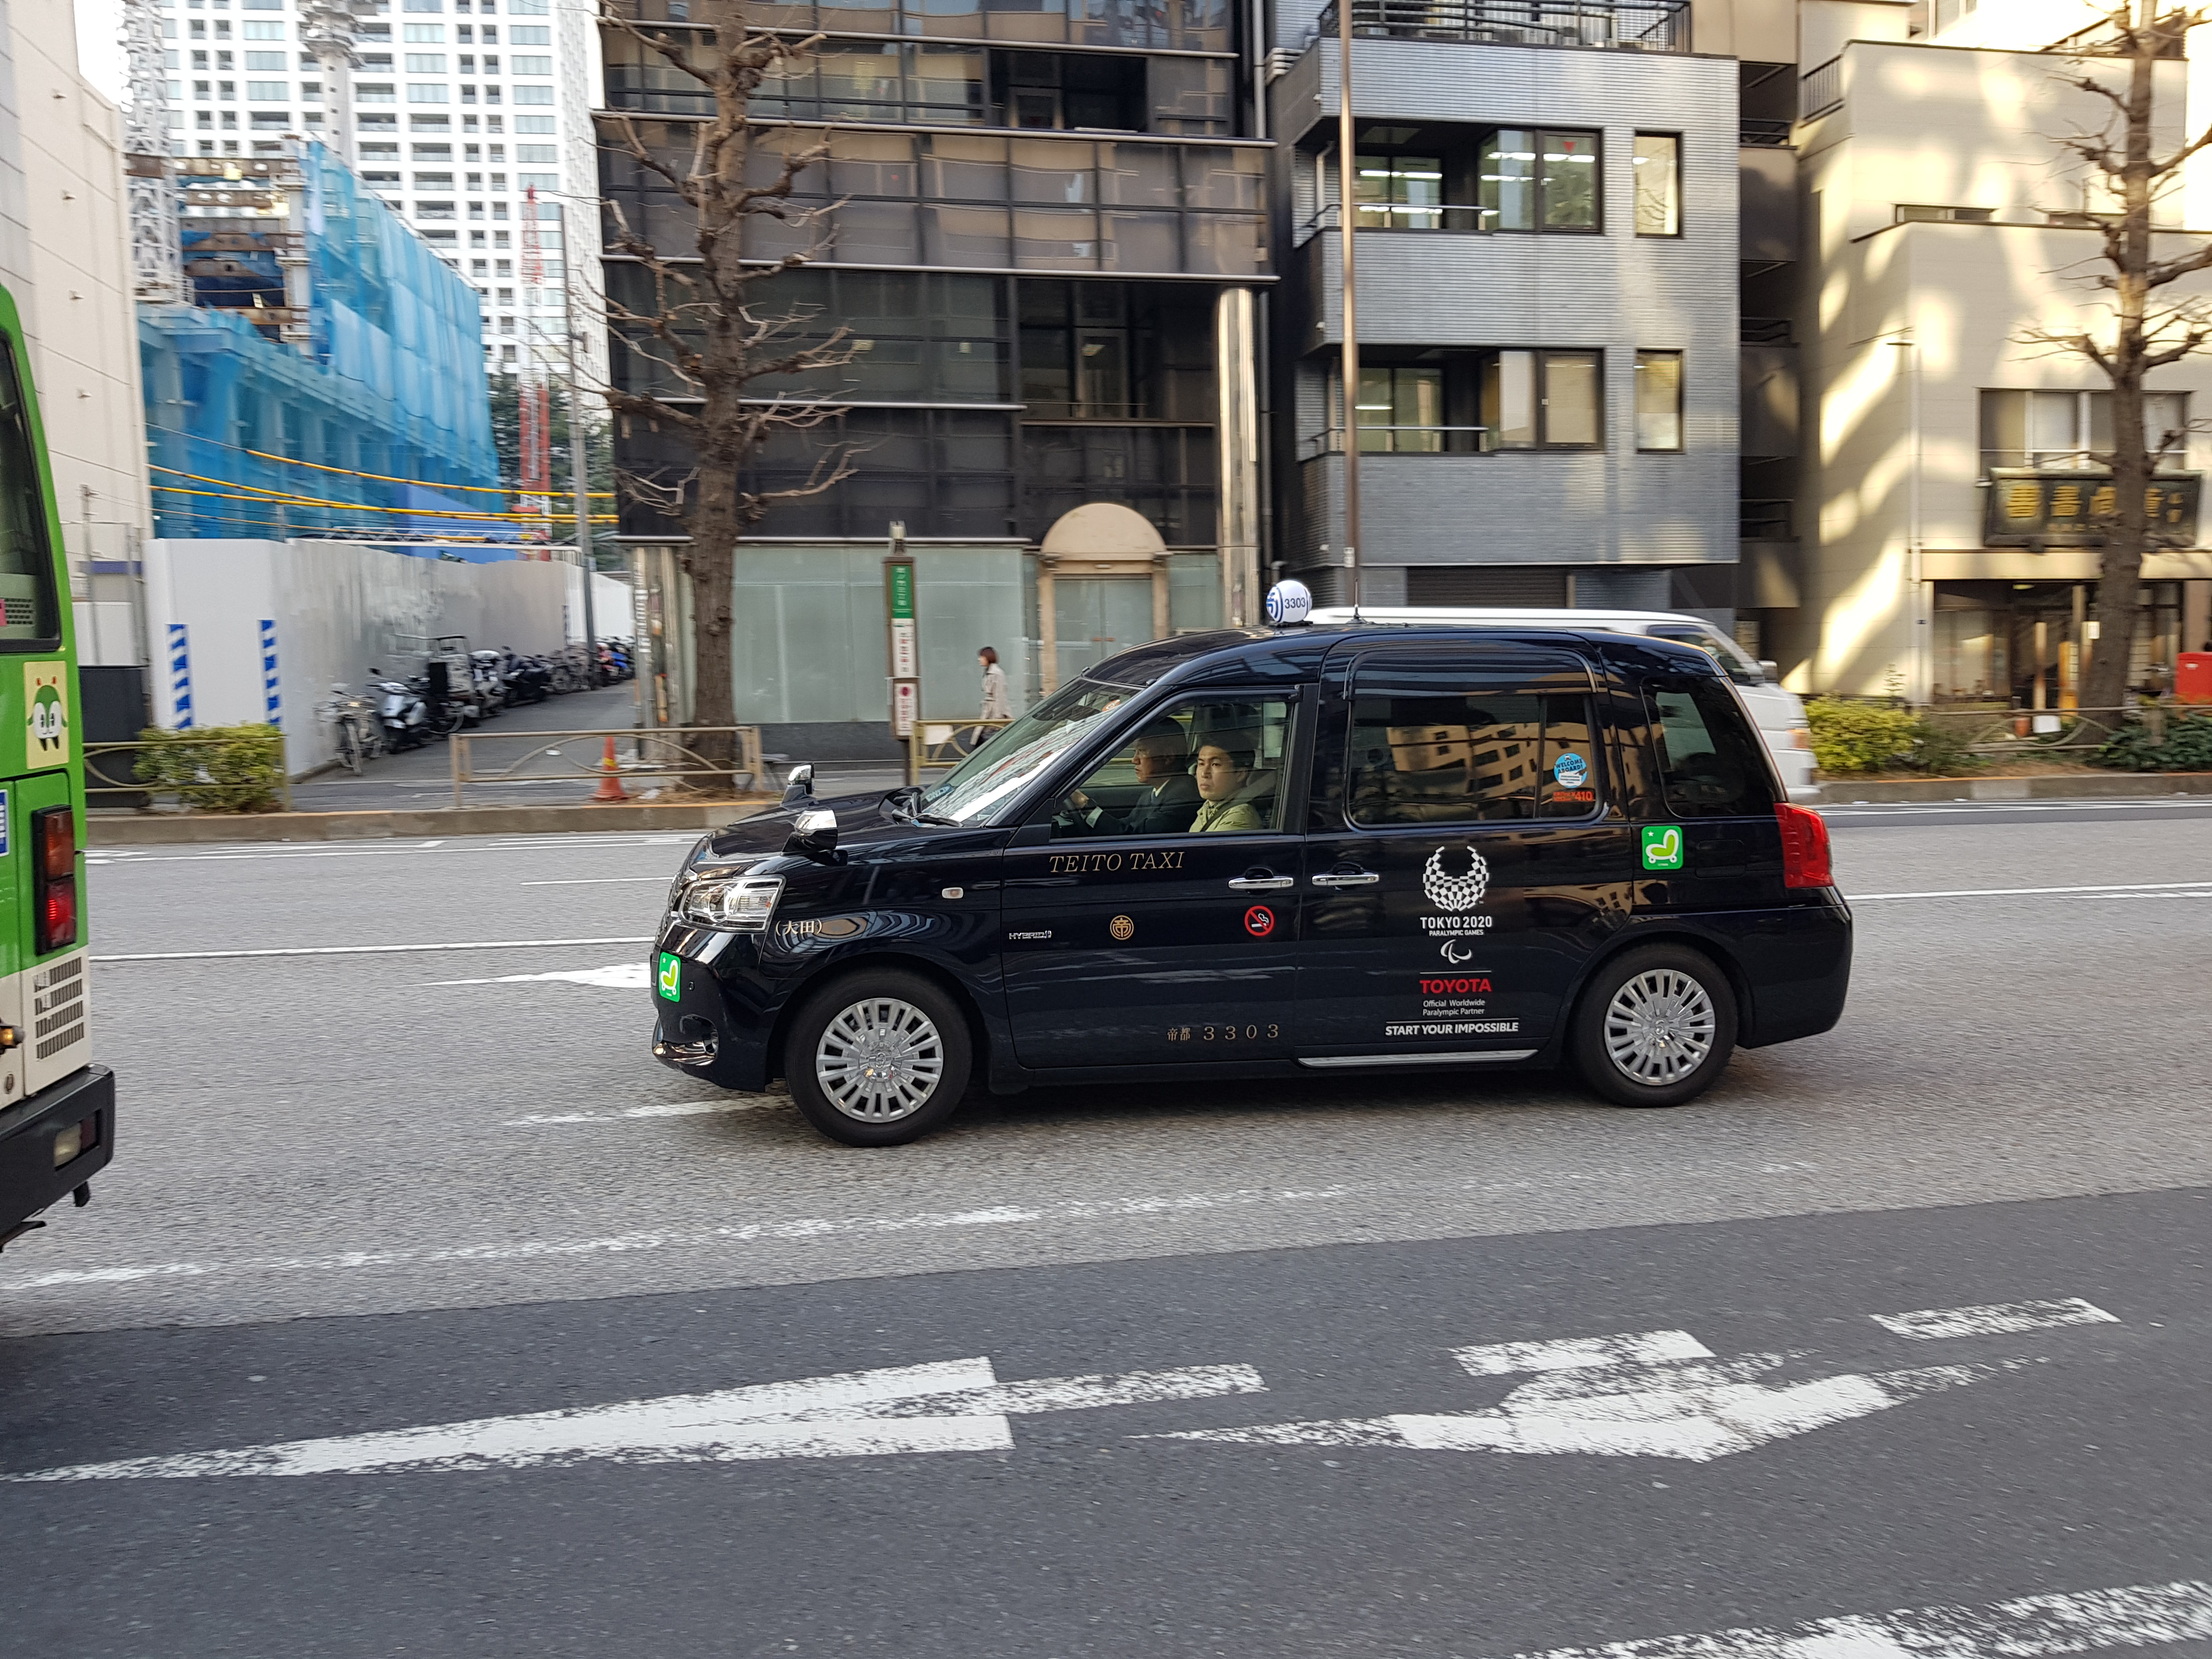 How to Catch a Taxi in Tokyo: Quick Guide | Tokyo Cheapo